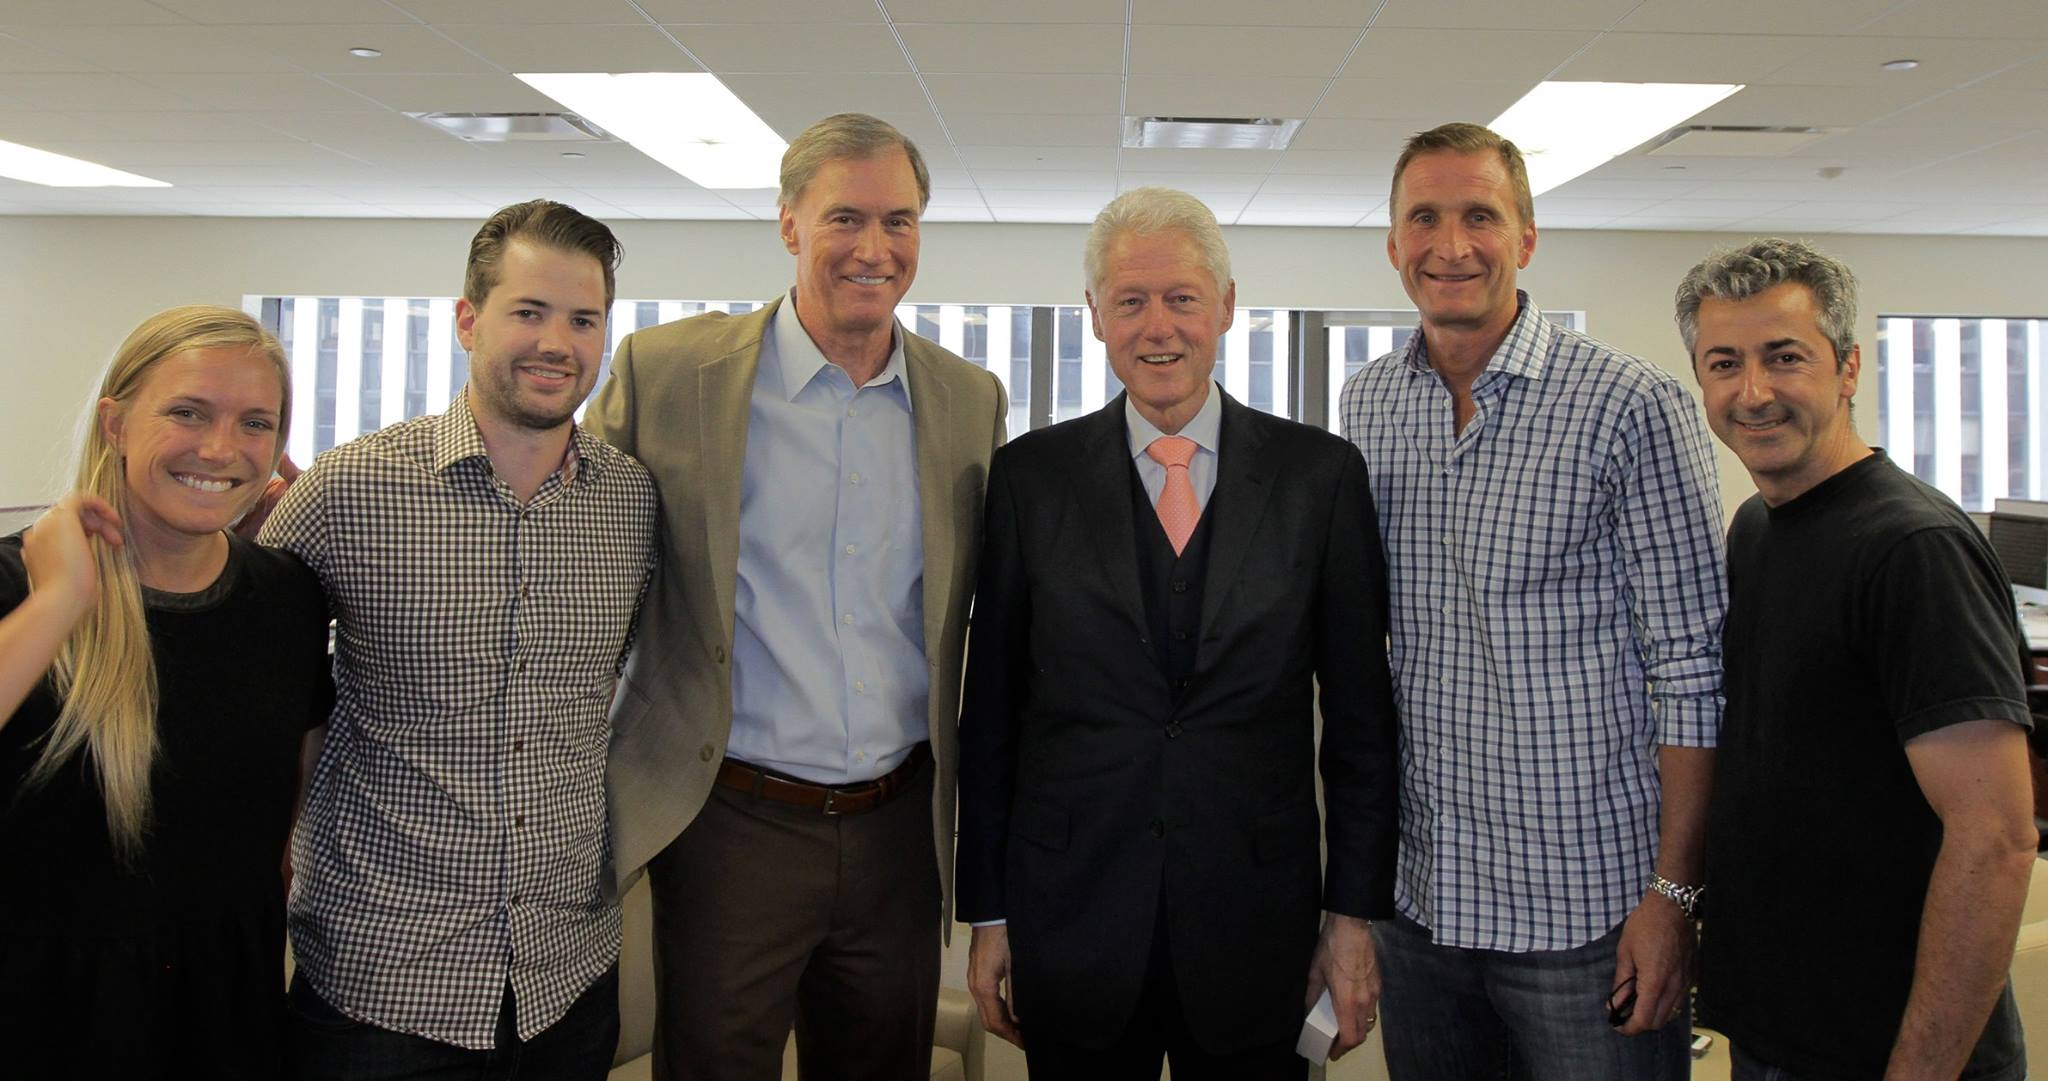 With President Bill Clinton after an interview for  The Garden's Defining Moments .   From L to R: Producer McKenzie Barney, Senior Producer Dan Galway, Executive Producer & Host Fran Healy, President Bill Clinton, Founder & Executive Producer Roman Gackowski, Director of Photography Chris Kostianis